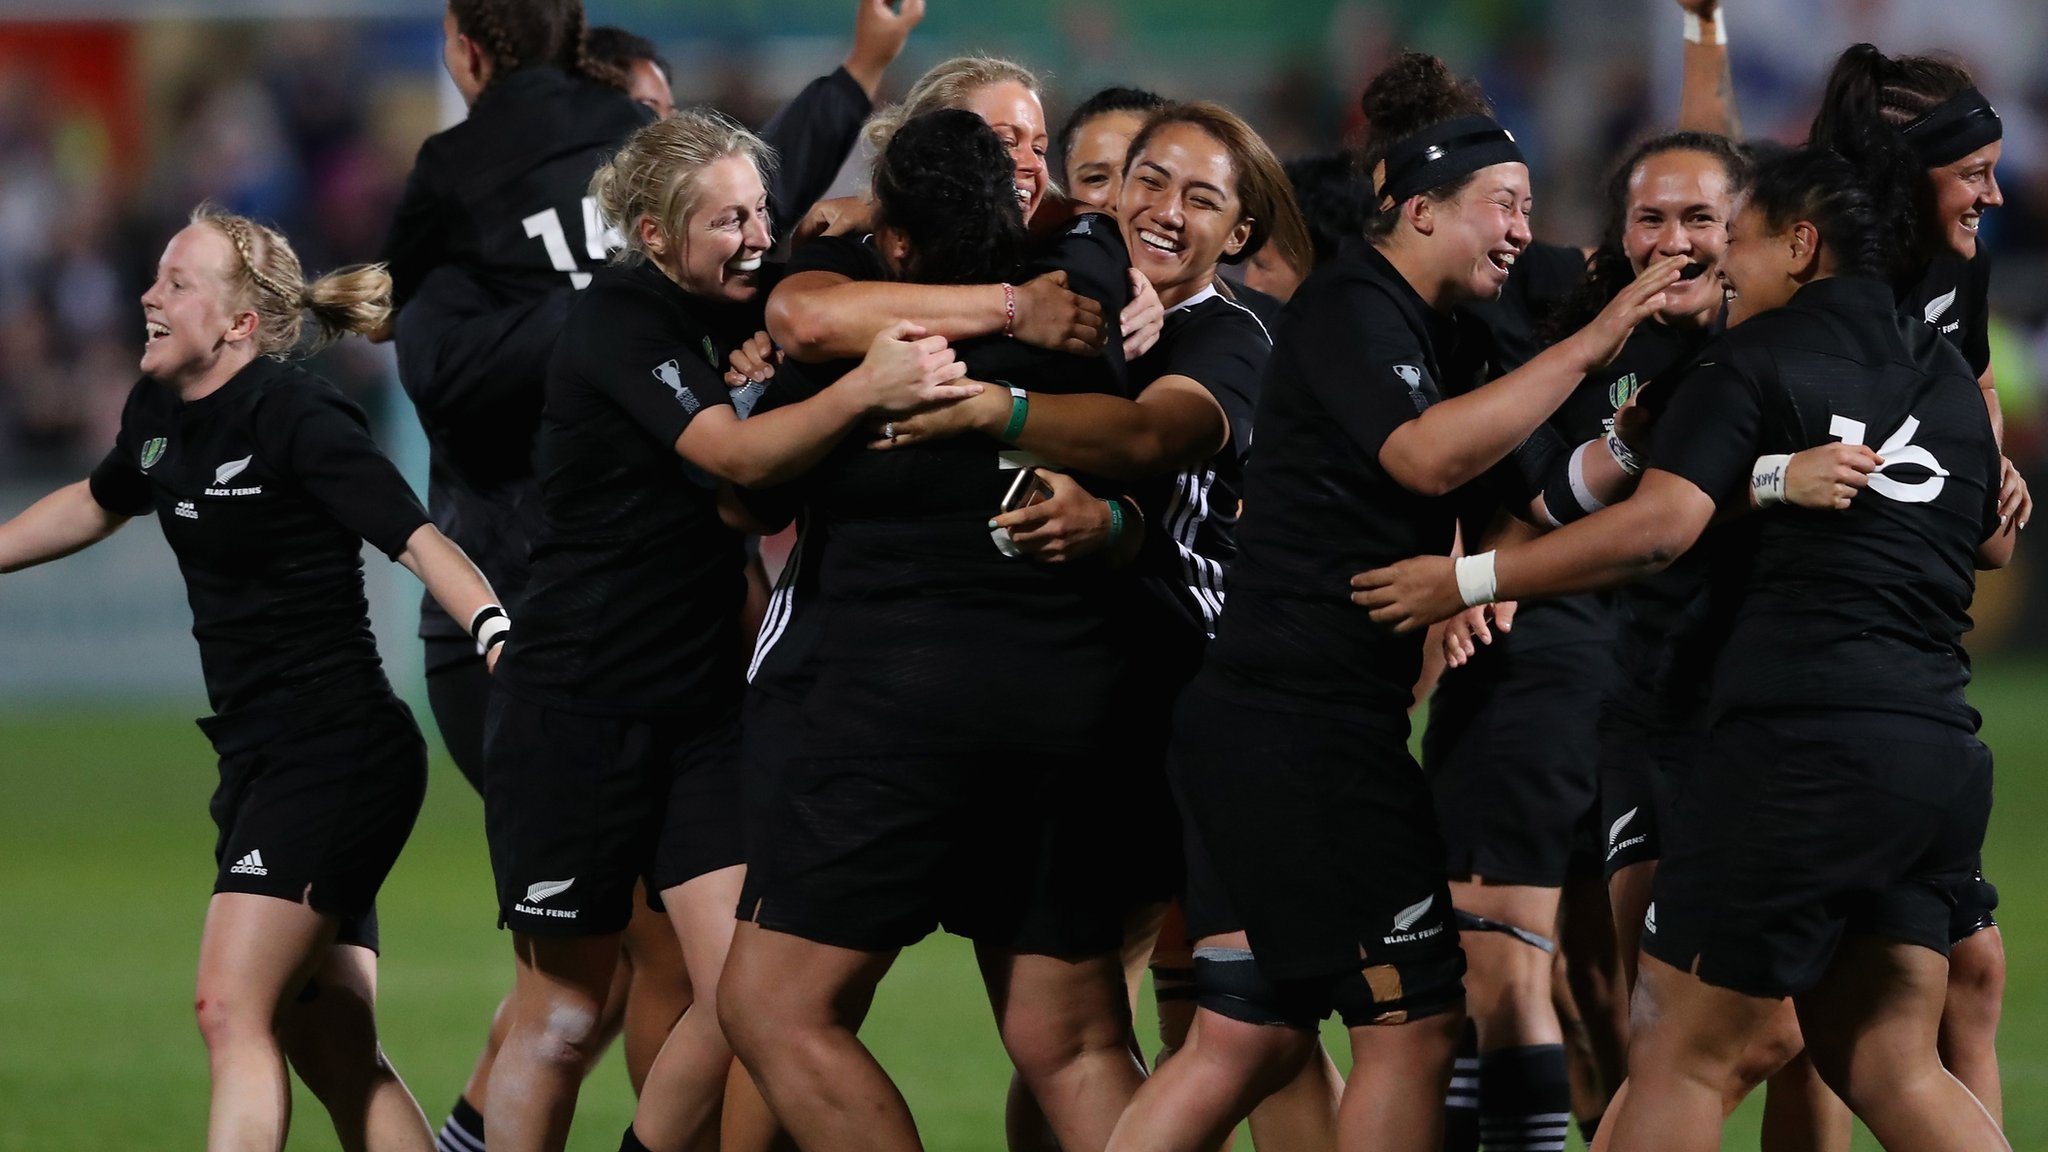 New Zealand Rugby: 17 Women's World Cup winners given contract for first time